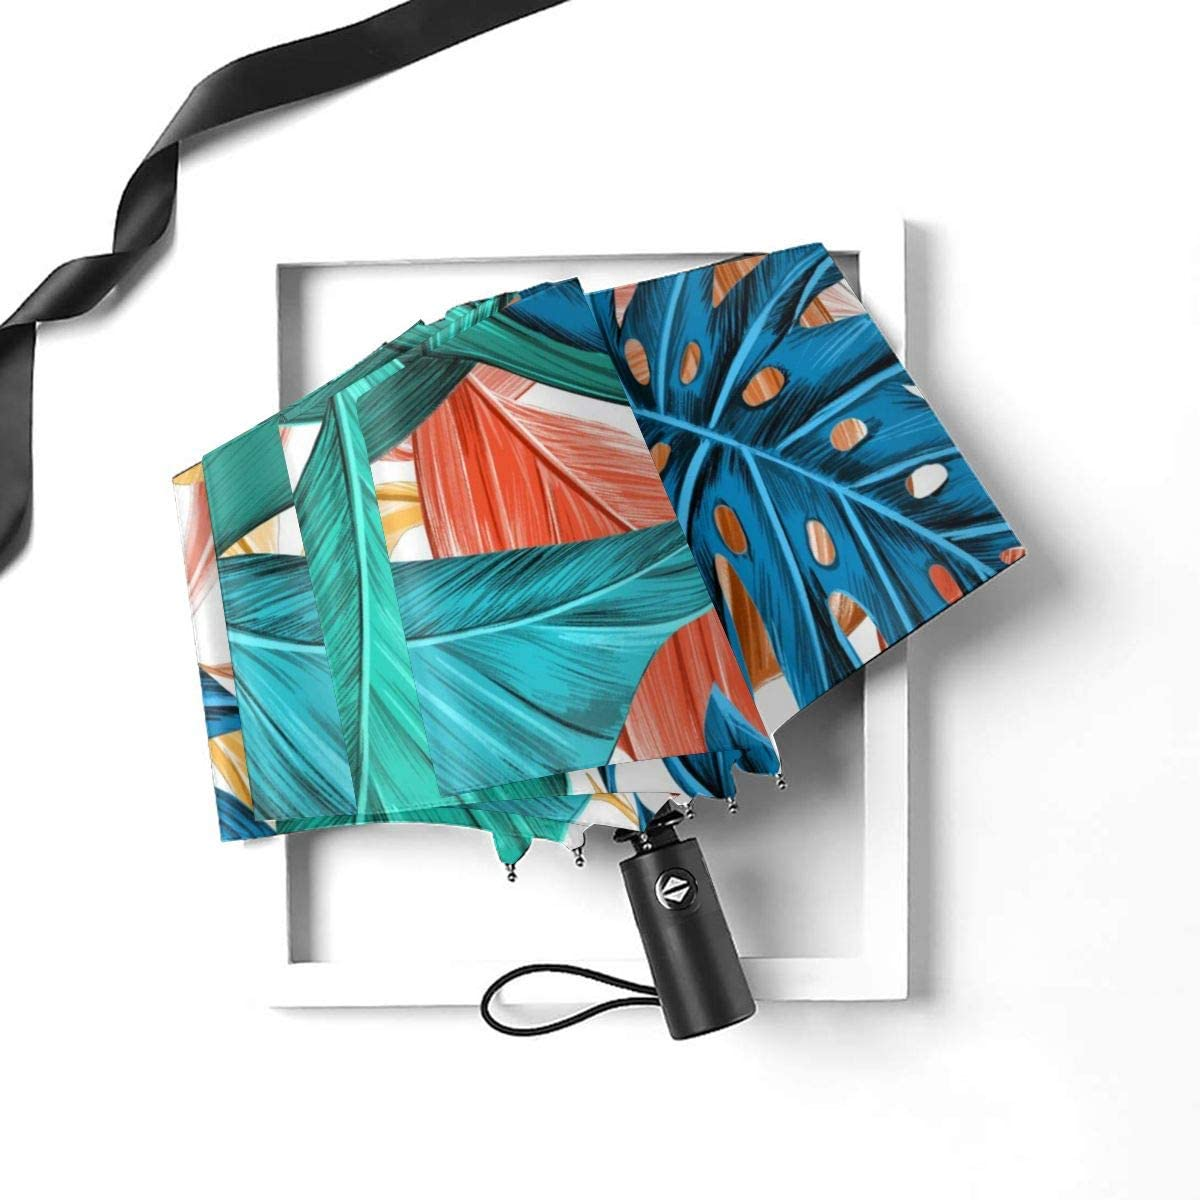 Leaf Tropical Summer Palm Tree Texture Compact Travel Umbrella Windproof Reinforced Canopy 8 Ribs Umbrella Auto Open And Close Button Personalized